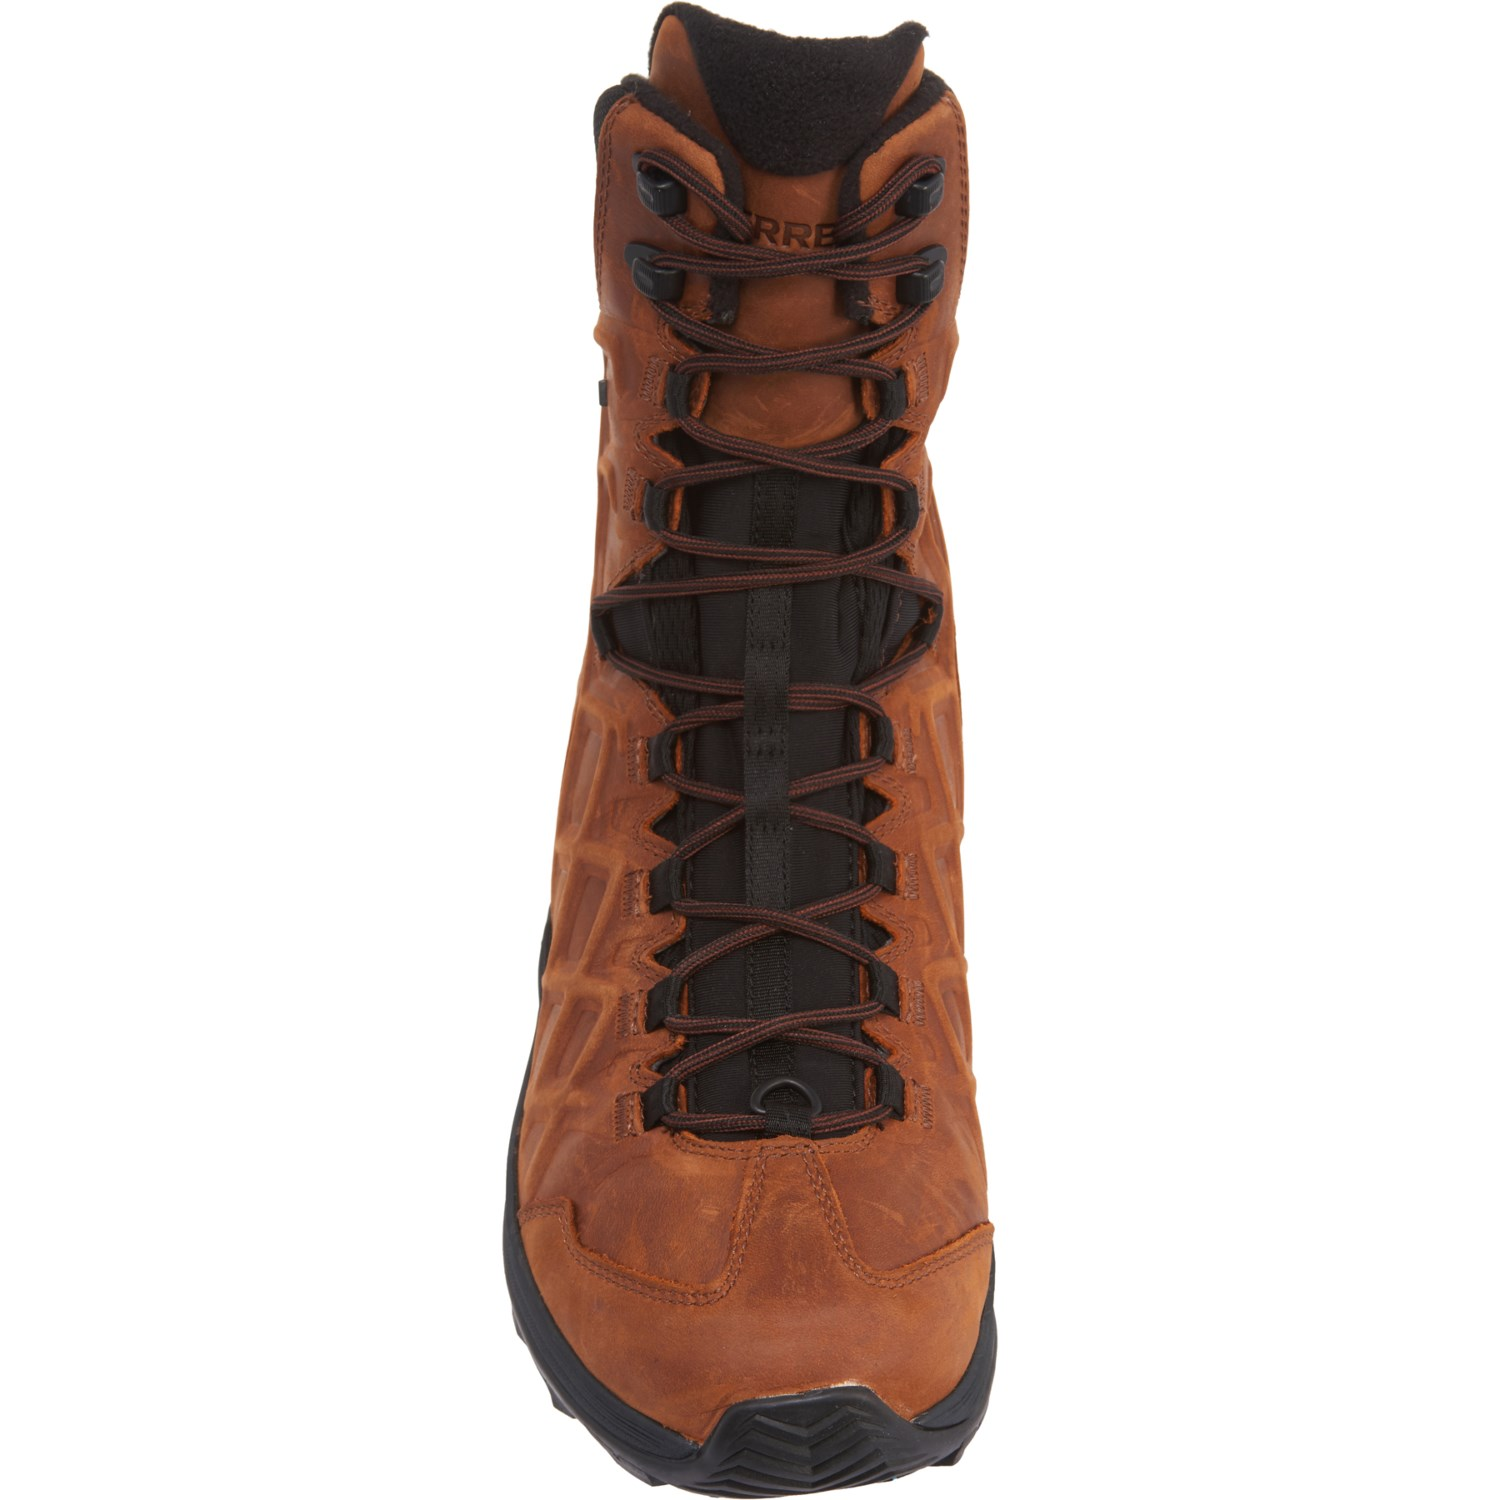 3287d3caccf Merrell Thermo Rogue Tactical Ice+ Winter Boots (For Men) - Save 33%